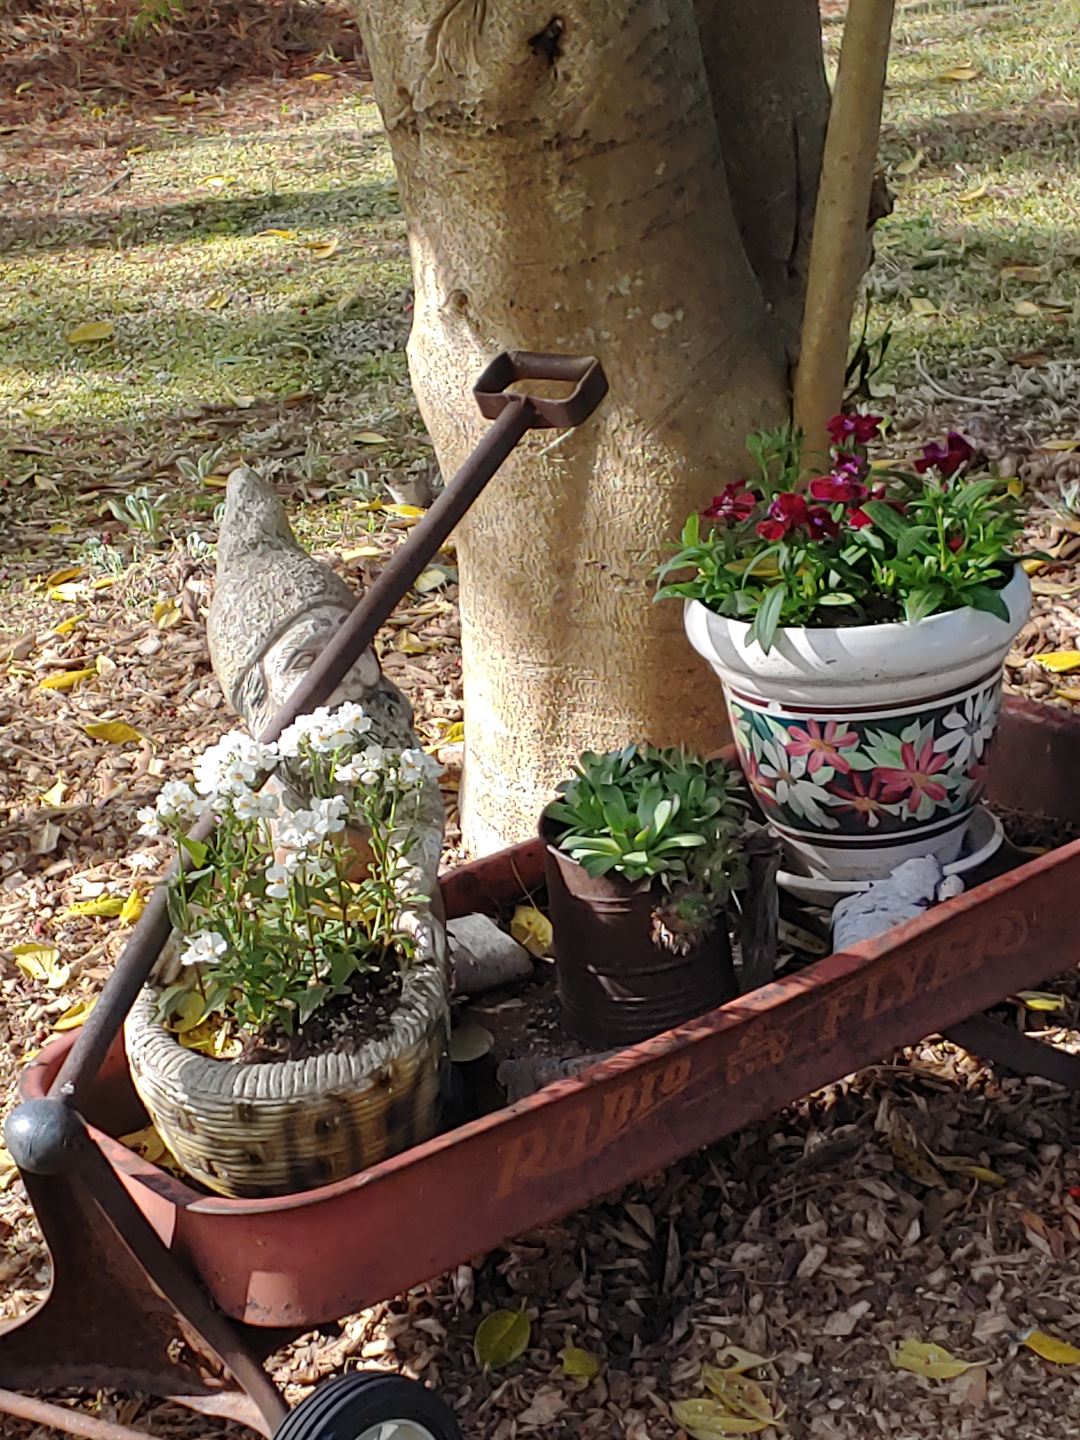 A childs wagon with three pots of flowers in it.